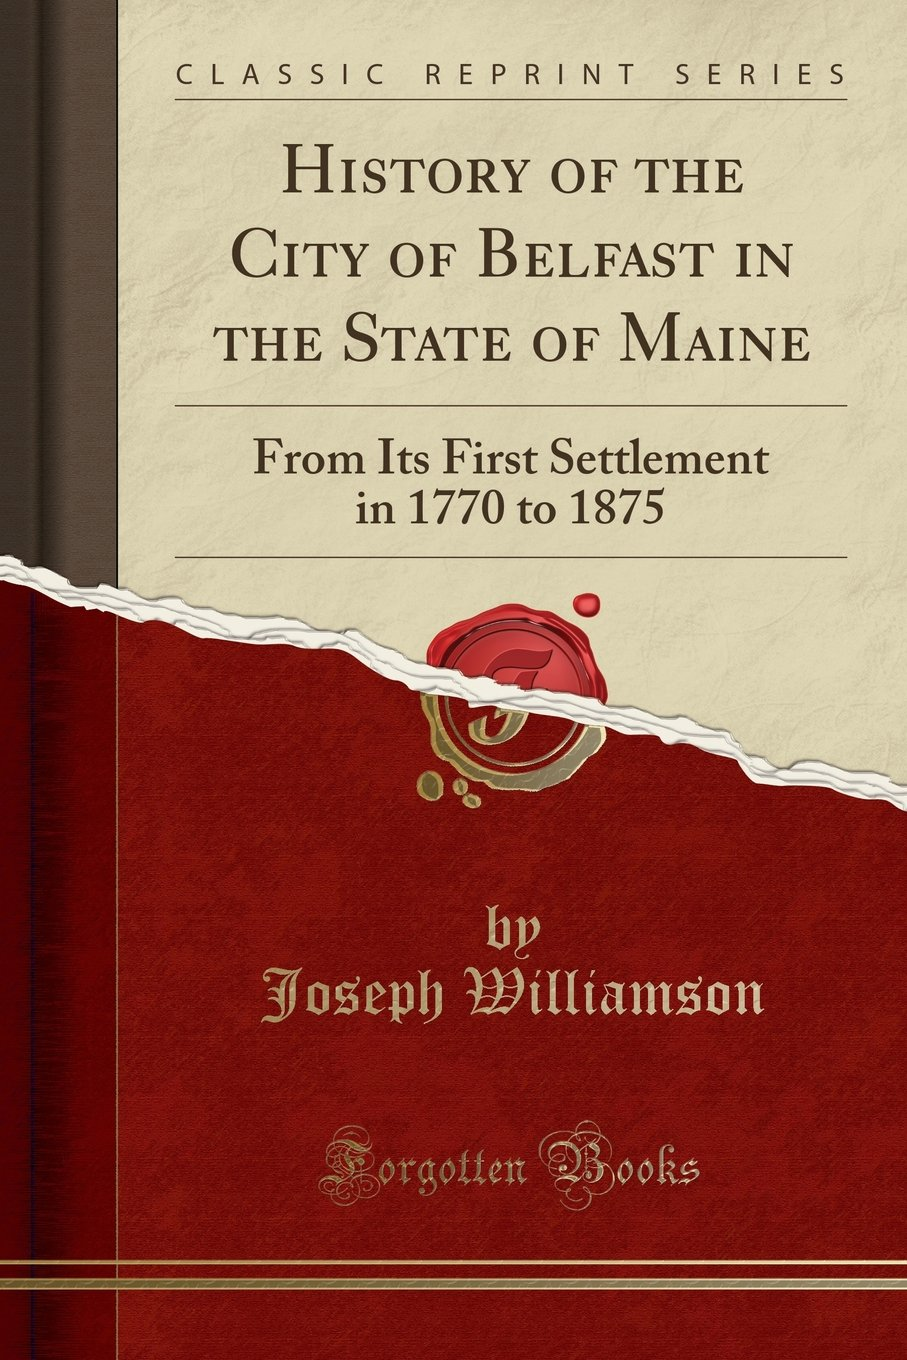 History of the City of Belfast in the State of Maine: From Its First Settlement in 1770 to 1875 (Classic Reprint)